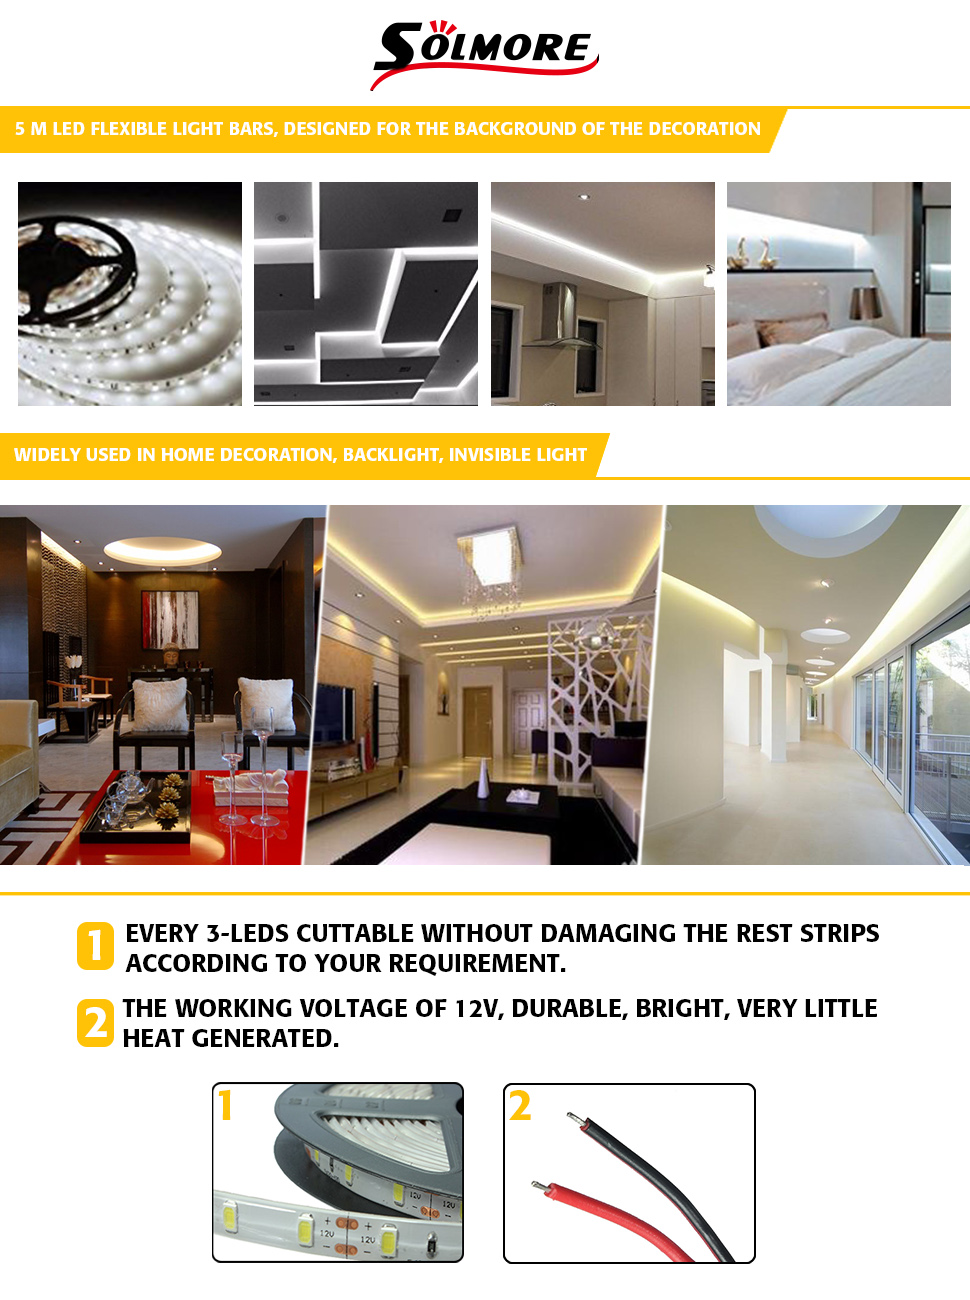 Do you already have led lighting inside the house part 1 come - Led Type 5630 Smd Self Adhesive Back With Double Side Adhesive Tape Led Quantity 300leds 5 Meter Or 60 Leds Meter Package 5 Meters Reel